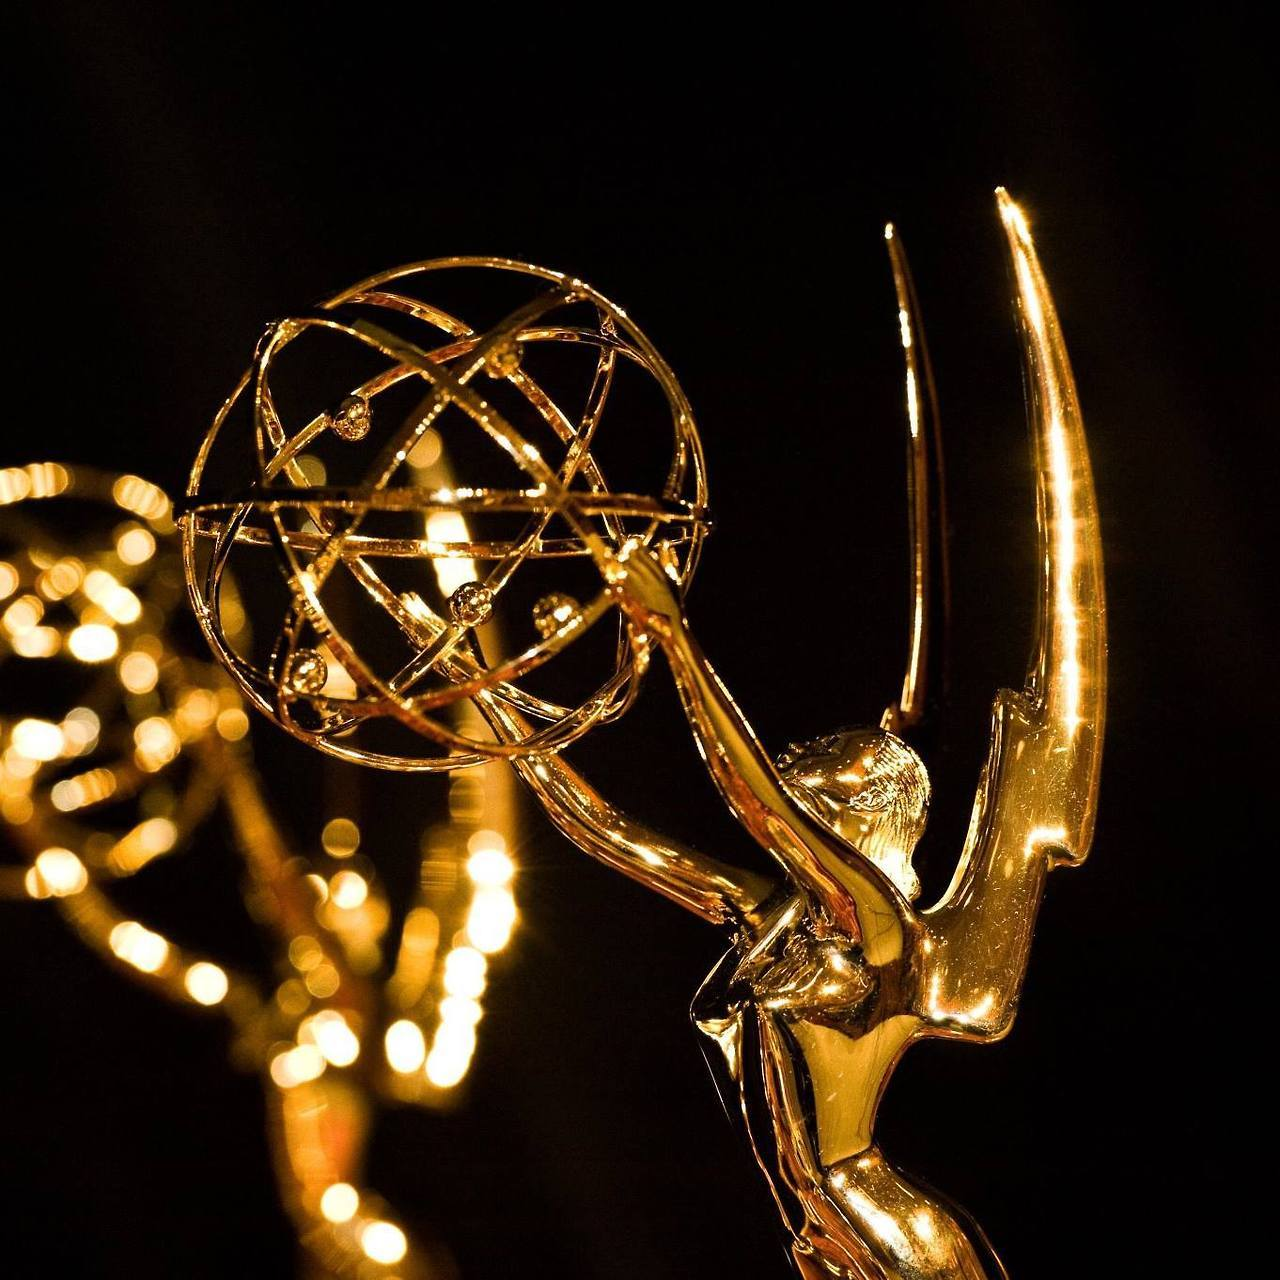 freelance work - I was hired by the National Academy of Television Arts & Sciences to launch and oversee social media strategy for the 39th & 40th Daytime Emmy Awards.I also worked on the 34th & 38th annual News and Documentary Emmy Awards and the 35th annual Sports Emmy Awards.I'm proud to have served as a Sports Emmy Awards judge in the category of Outstanding Sports Journalism.